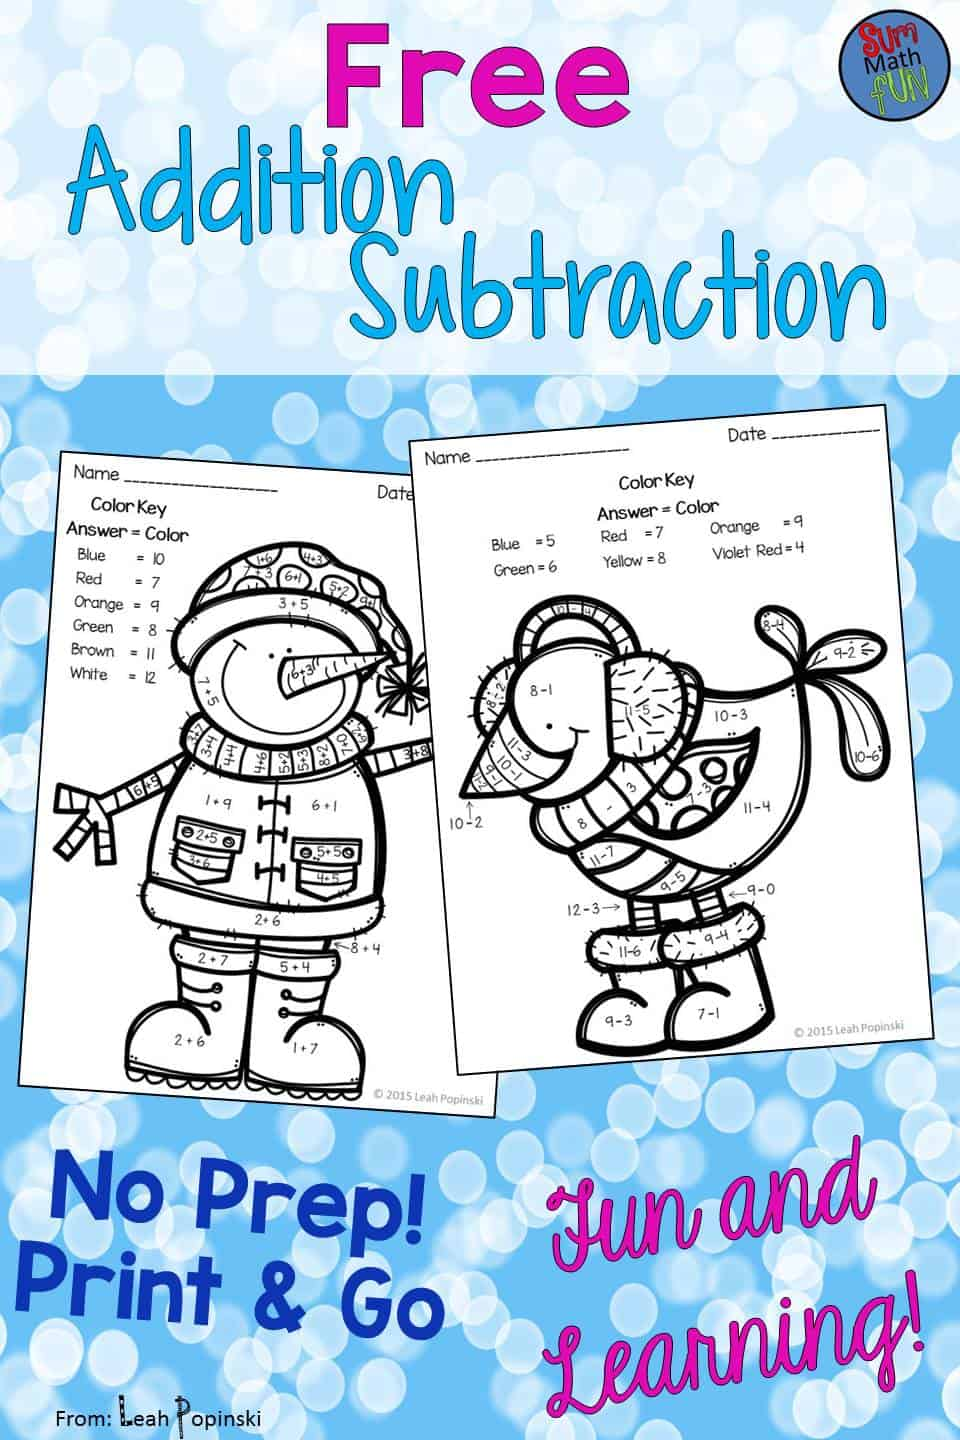 {Free} Winter Worksheets - Addition & Subtraction